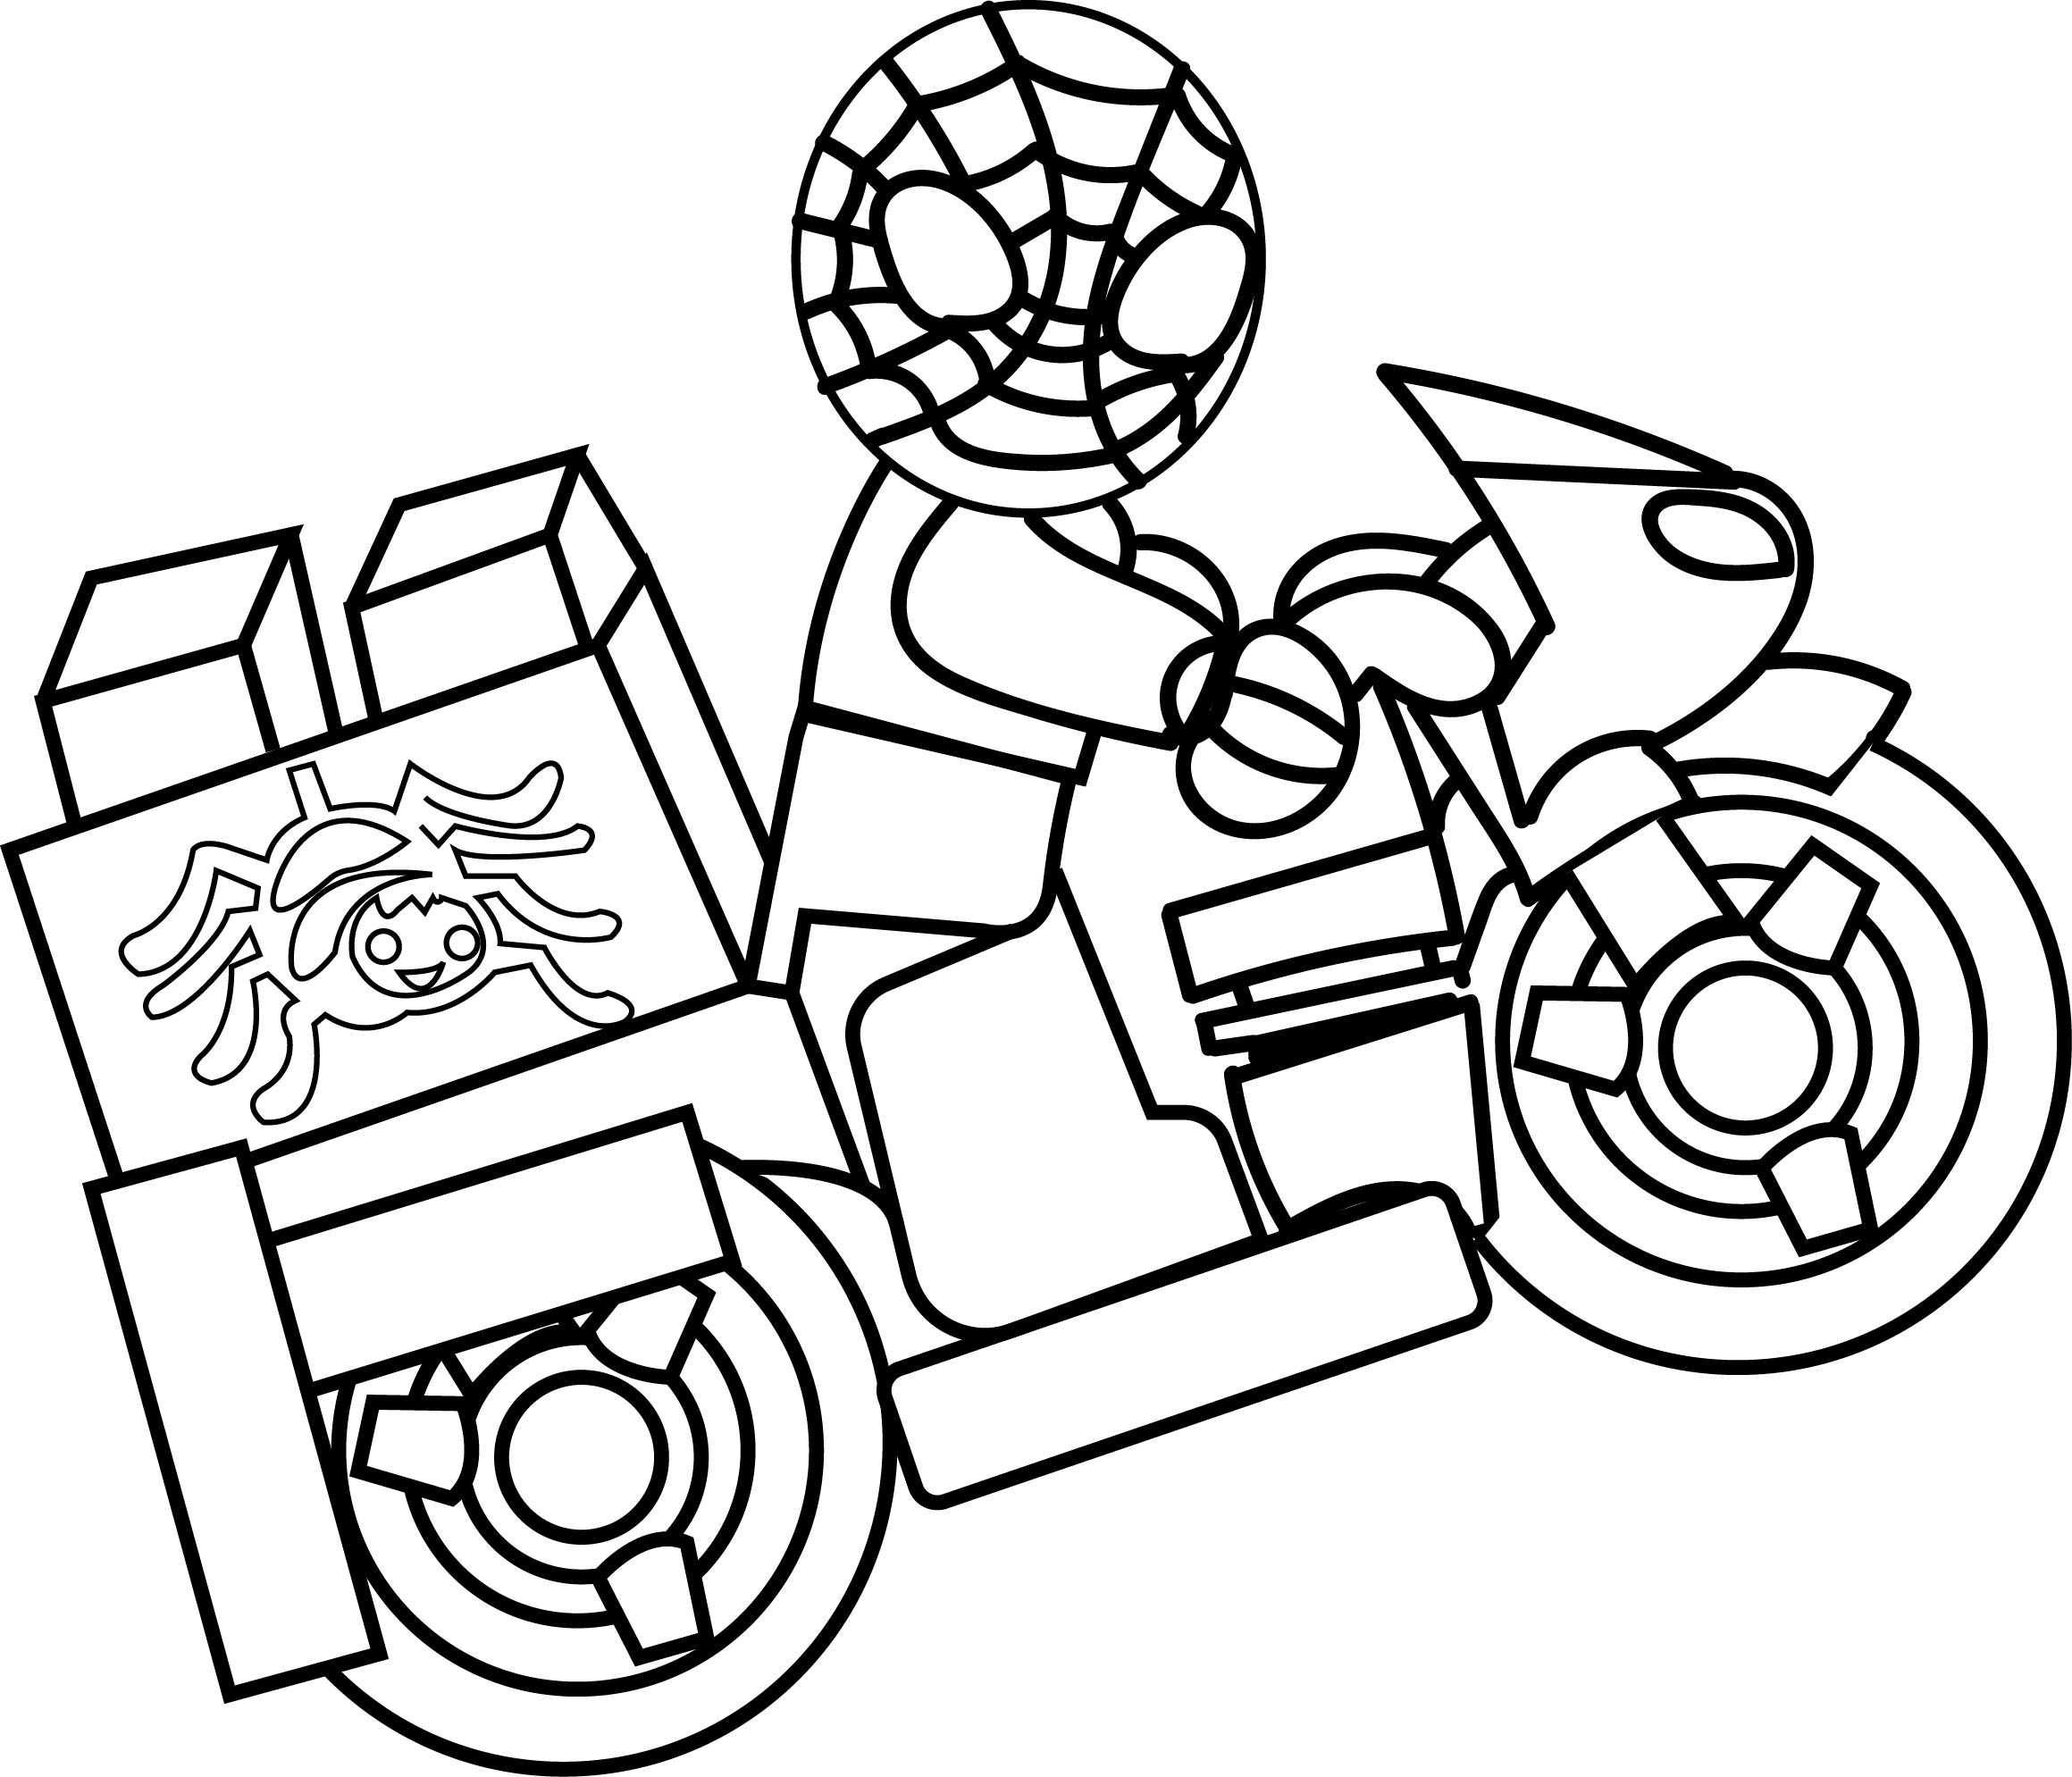 Lego Spiderman Coloring Pages Download Coloring Pages Lego